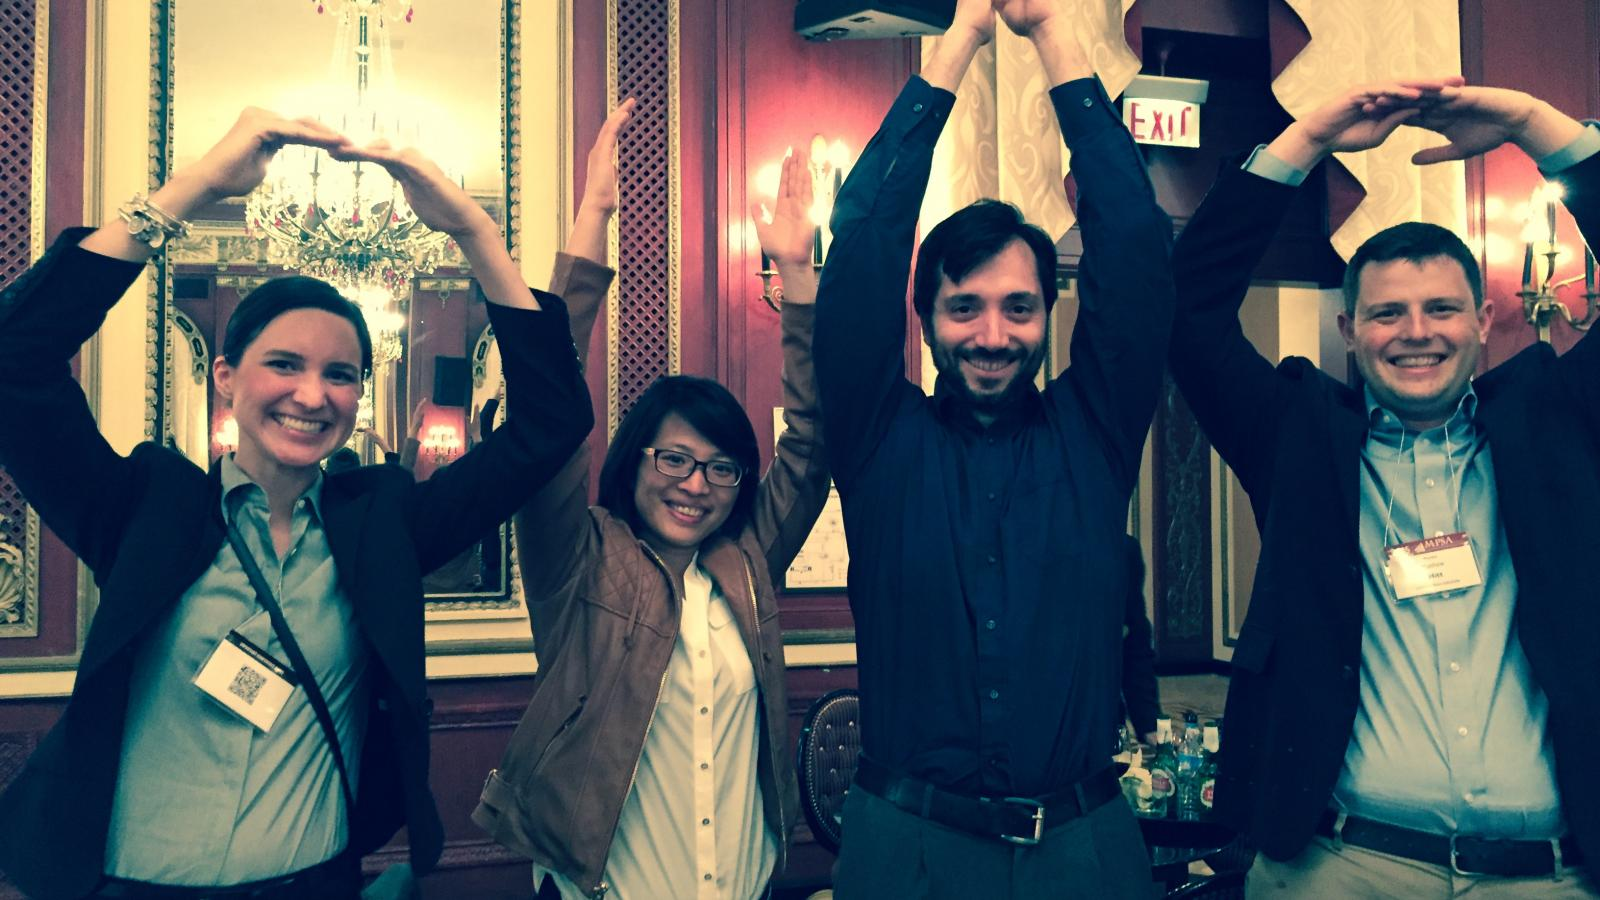 Graduate Students at MPSA Conference doing O-H-I-O